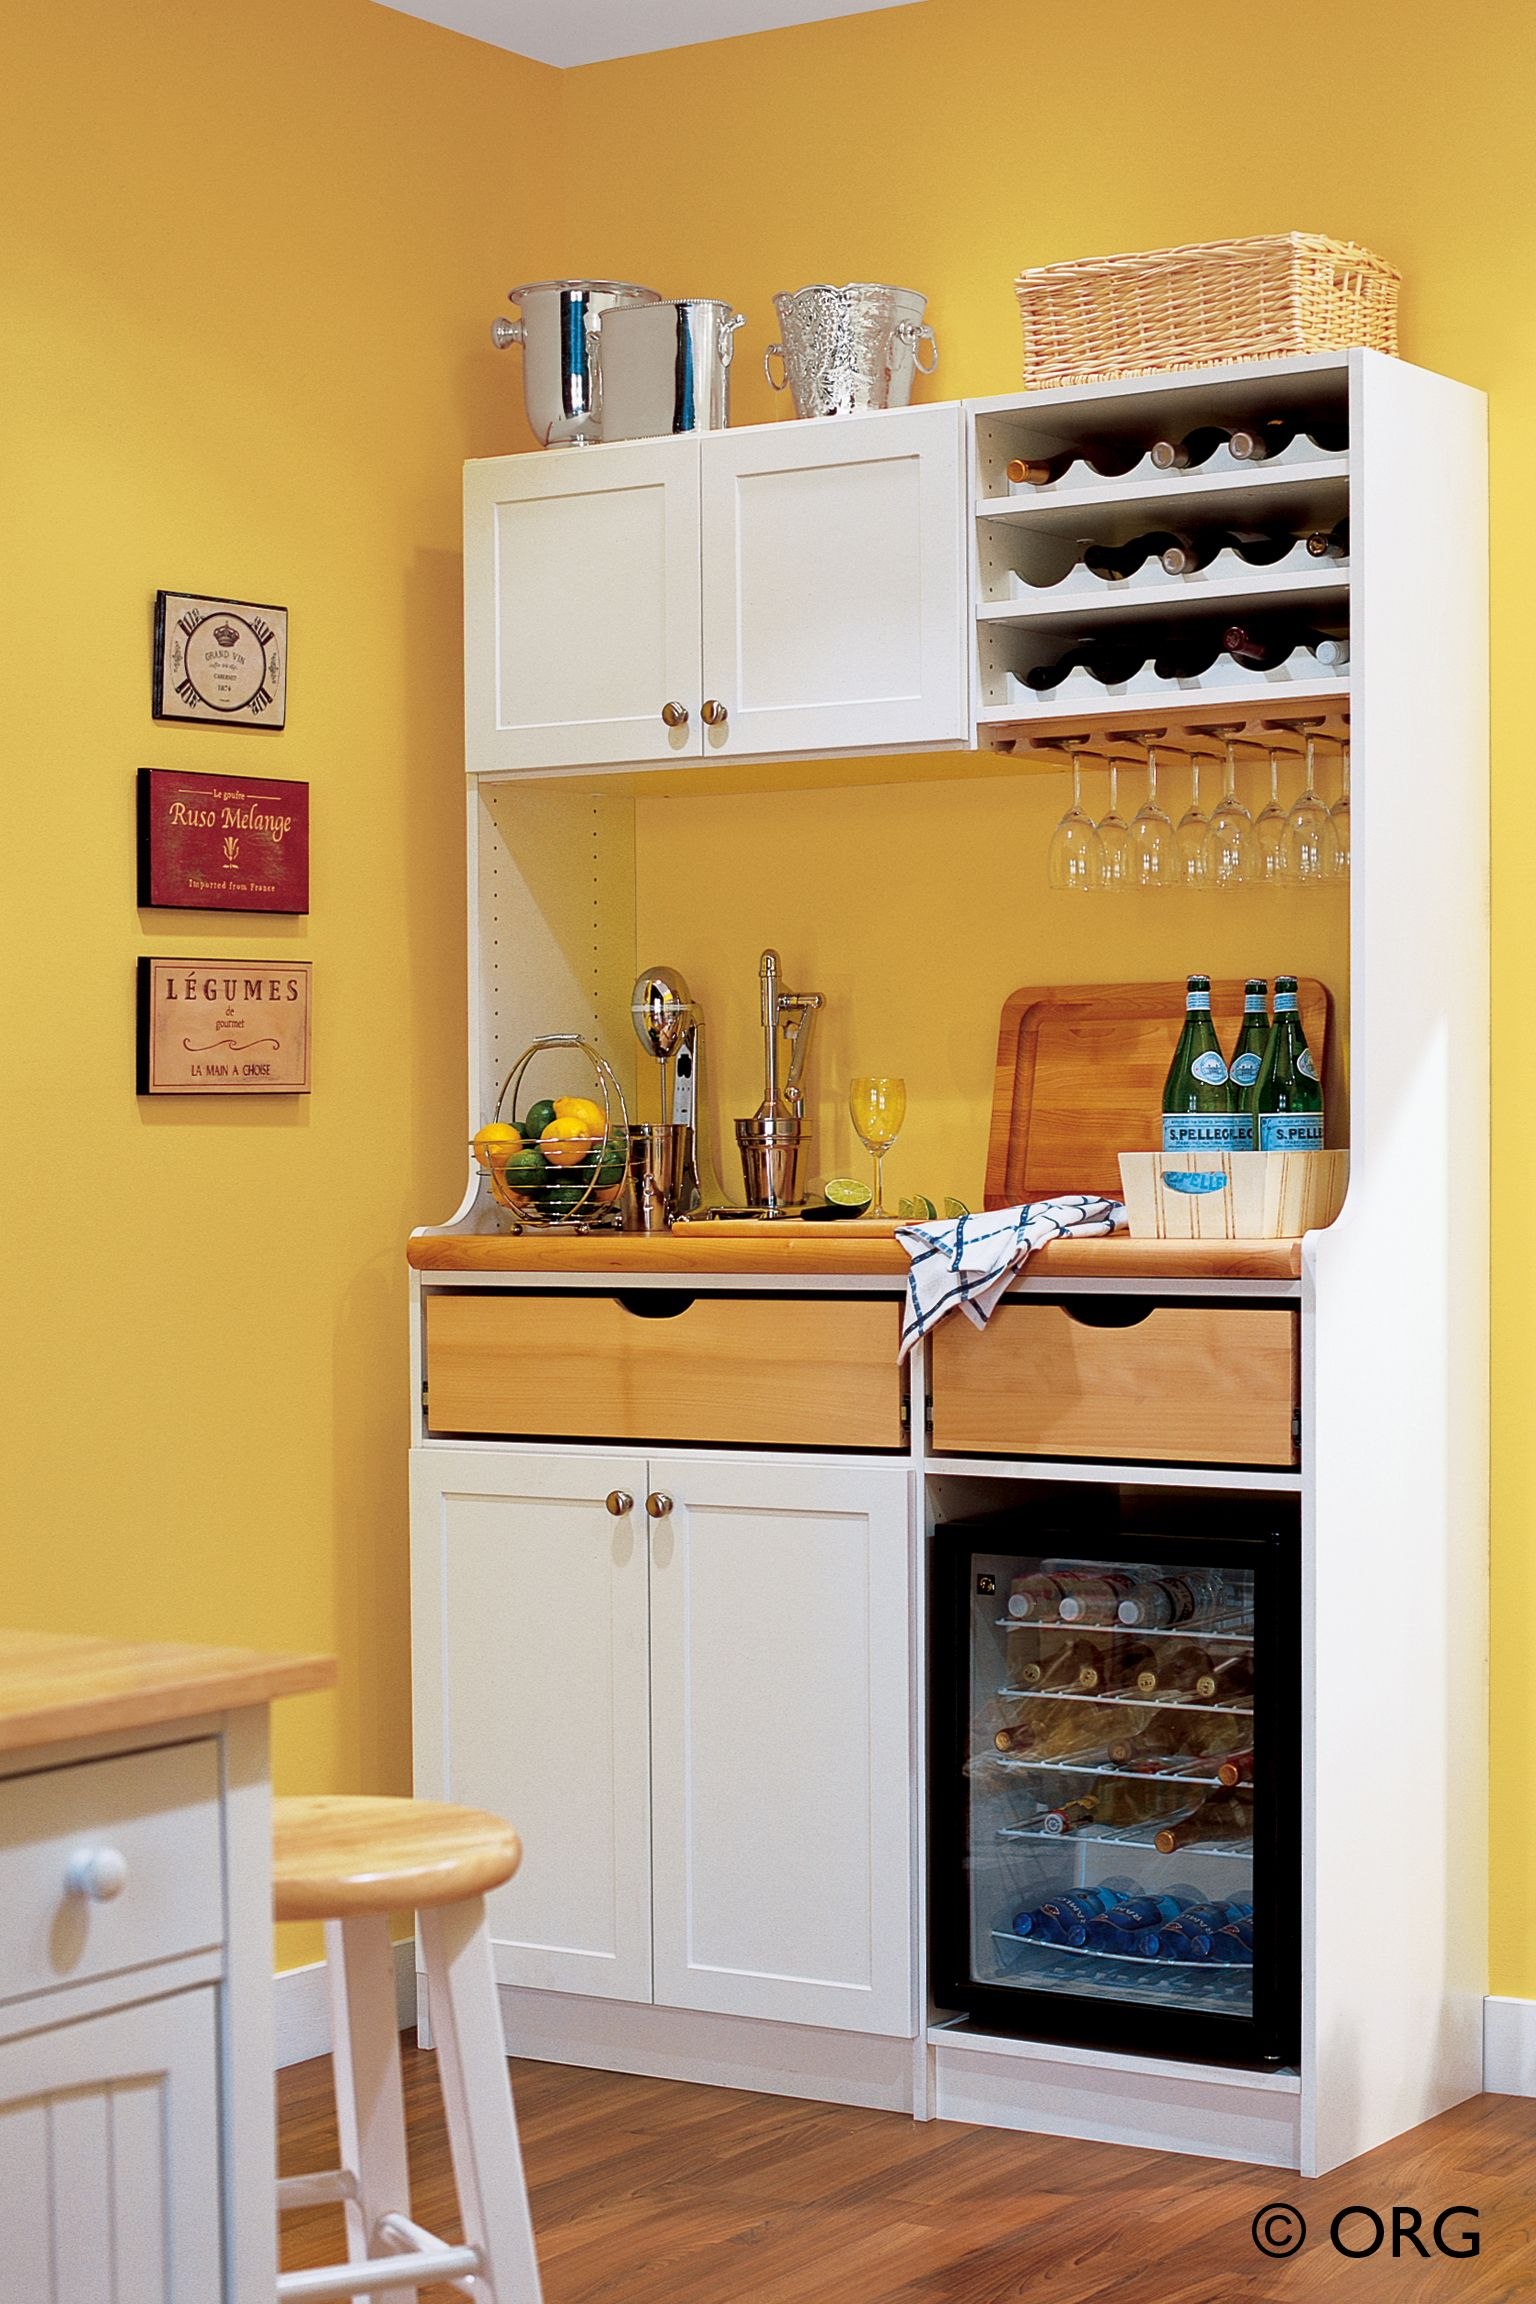 Charming Storage Solutions For Tiny Kitchens | Kitchen Storage Solutions: Pantry Storage  Cabinets